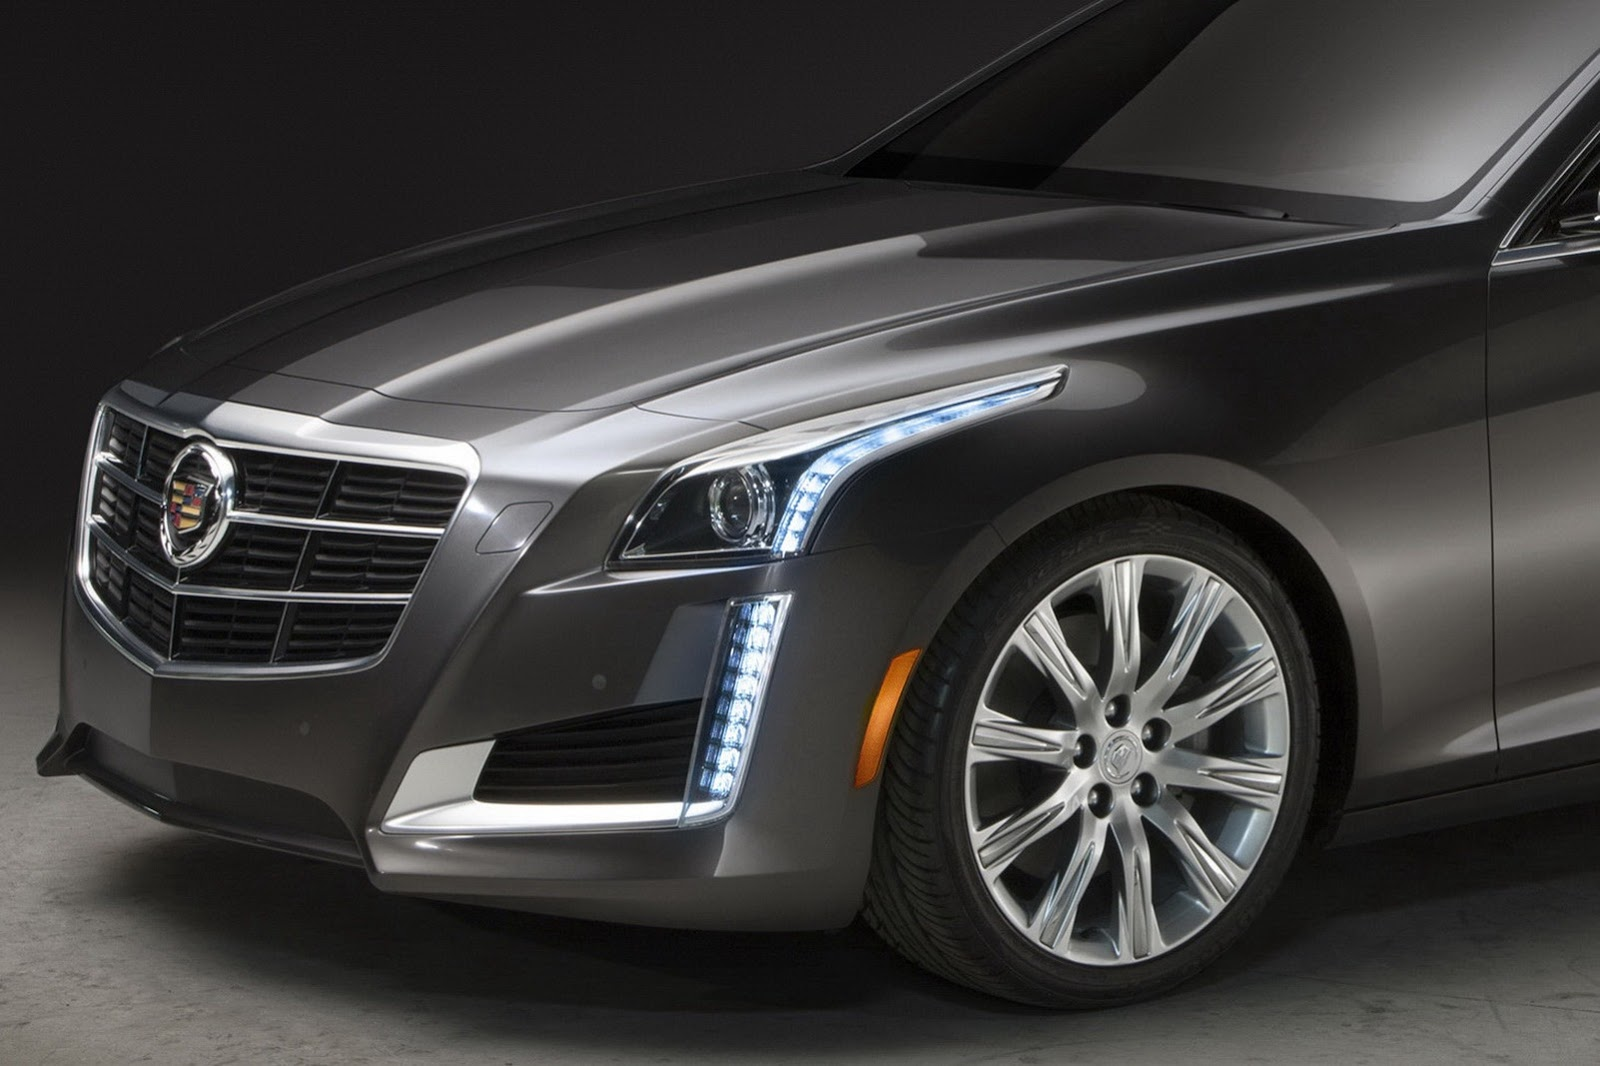 2014 Cadillac CTS Revealed In New York Photo Gallery Wallpapers HD